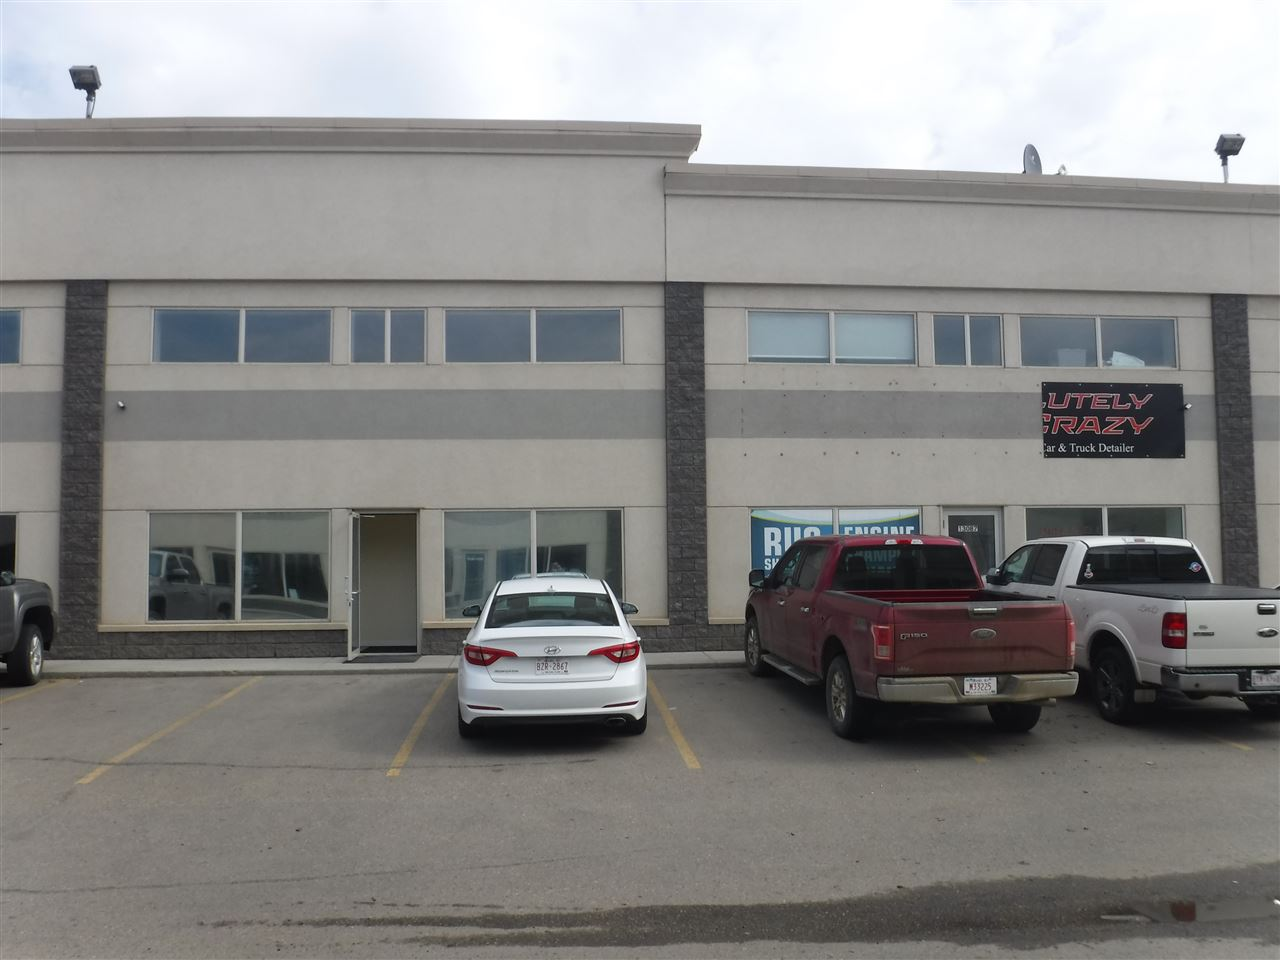 Two side by side commercial condo bays for sale. Business Industrial zoning, permitted uses include breweries, wineries and distilleries, Cannabis retail sales, equipment rentals, general industrial uses and more.  Current use is high traffic Auto Detailing plus Lunch Cafe servicing the Businesses in the area. This is a great opportunity for an owner operator situation with a total of almost 6400 sq ft including mezzanine. Both units have their own front retail with mezzanine above that could be used for storage, offices or staff lunch room. Could convert to separated bays with demising walls in bays added, and HVAC separation.